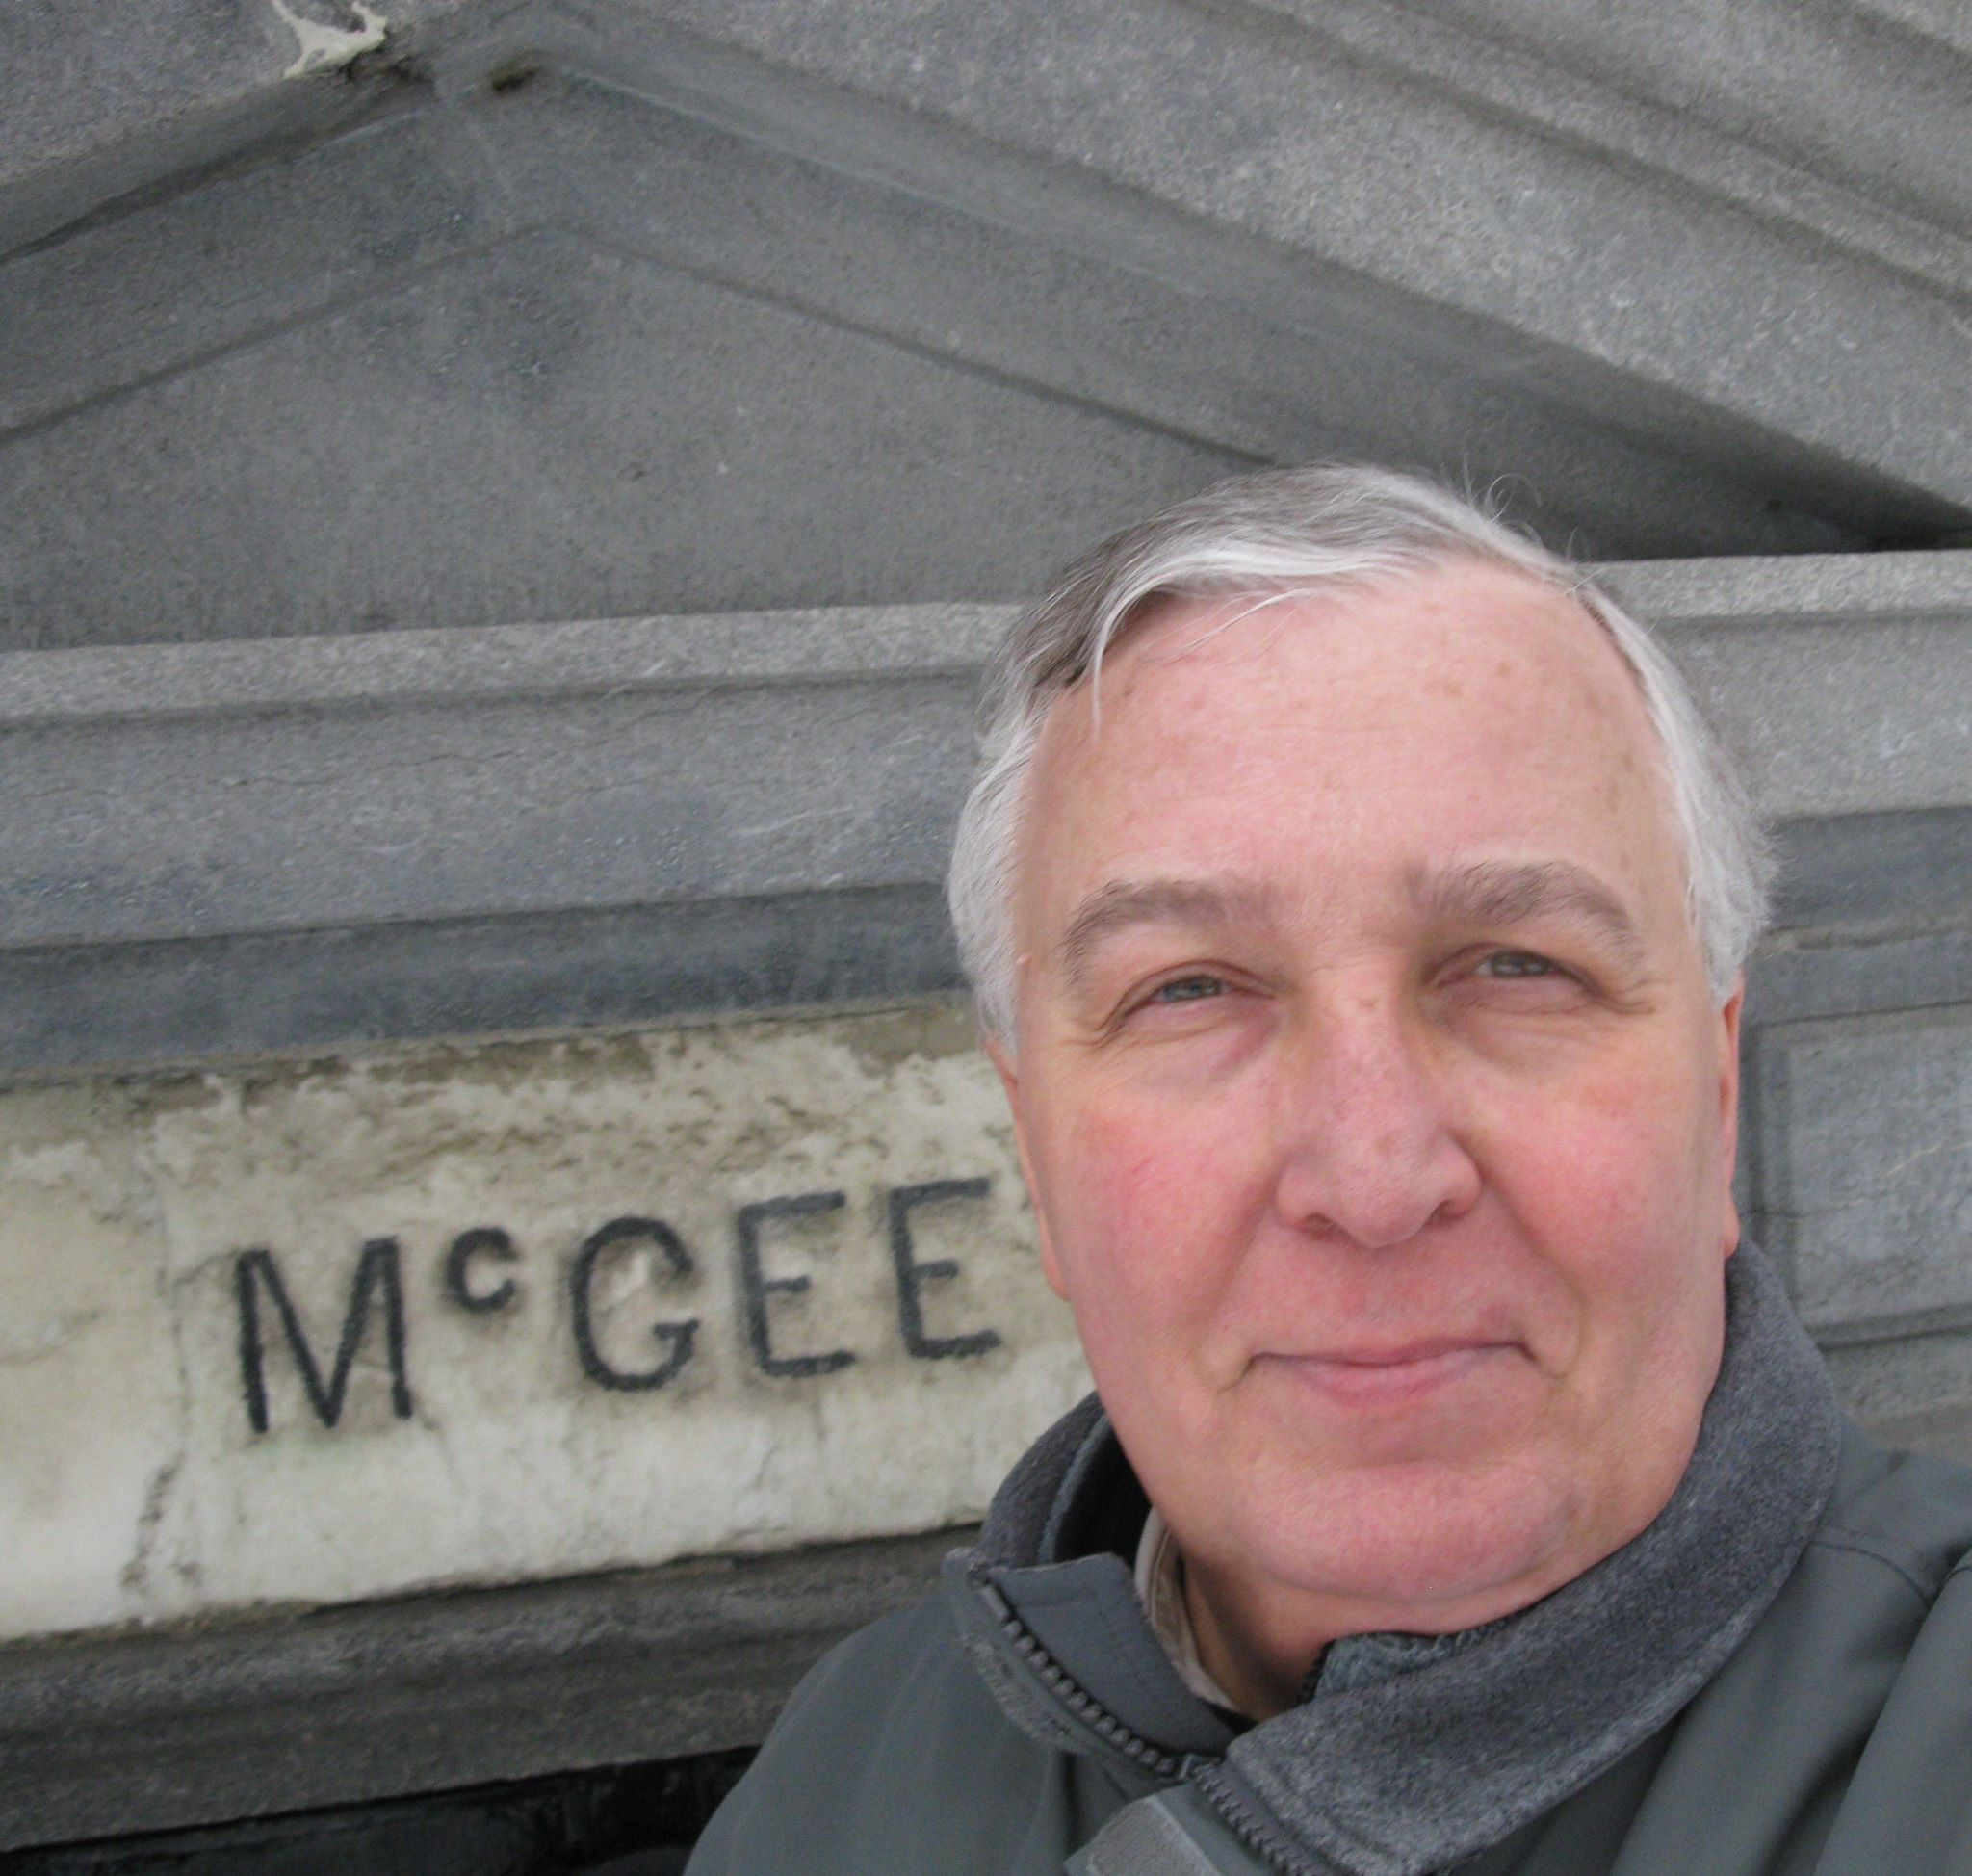 Stephen Morrissey at the tomb of Darcy McGee